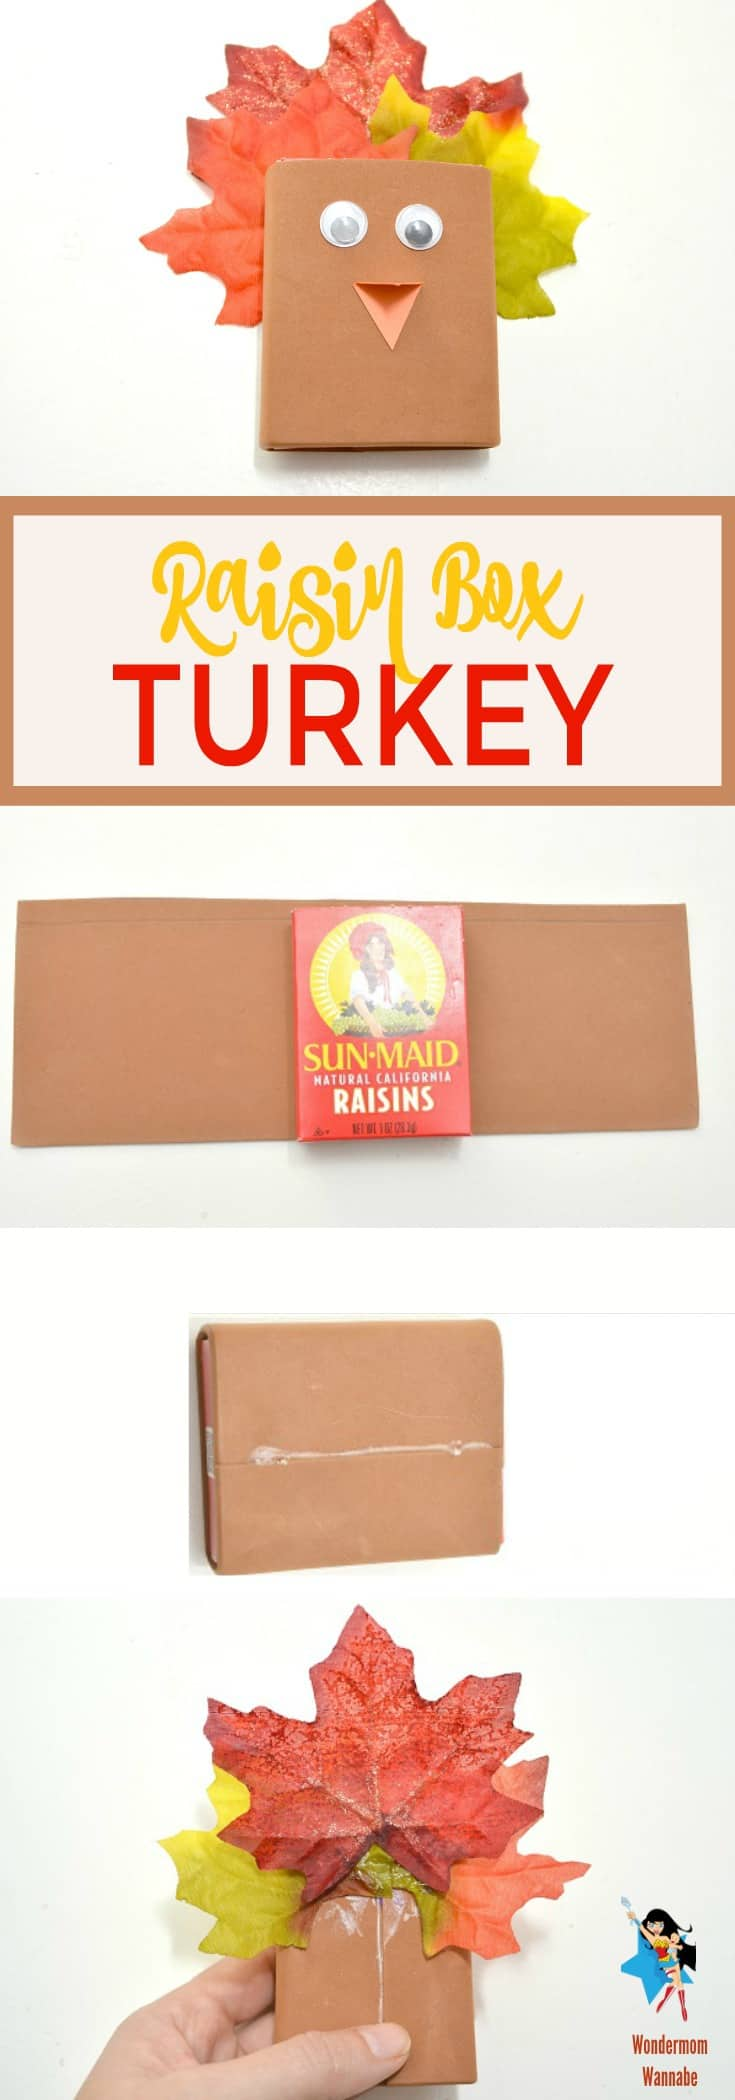 This raisin box turkey is such a cute snack idea for Thanksgiving!